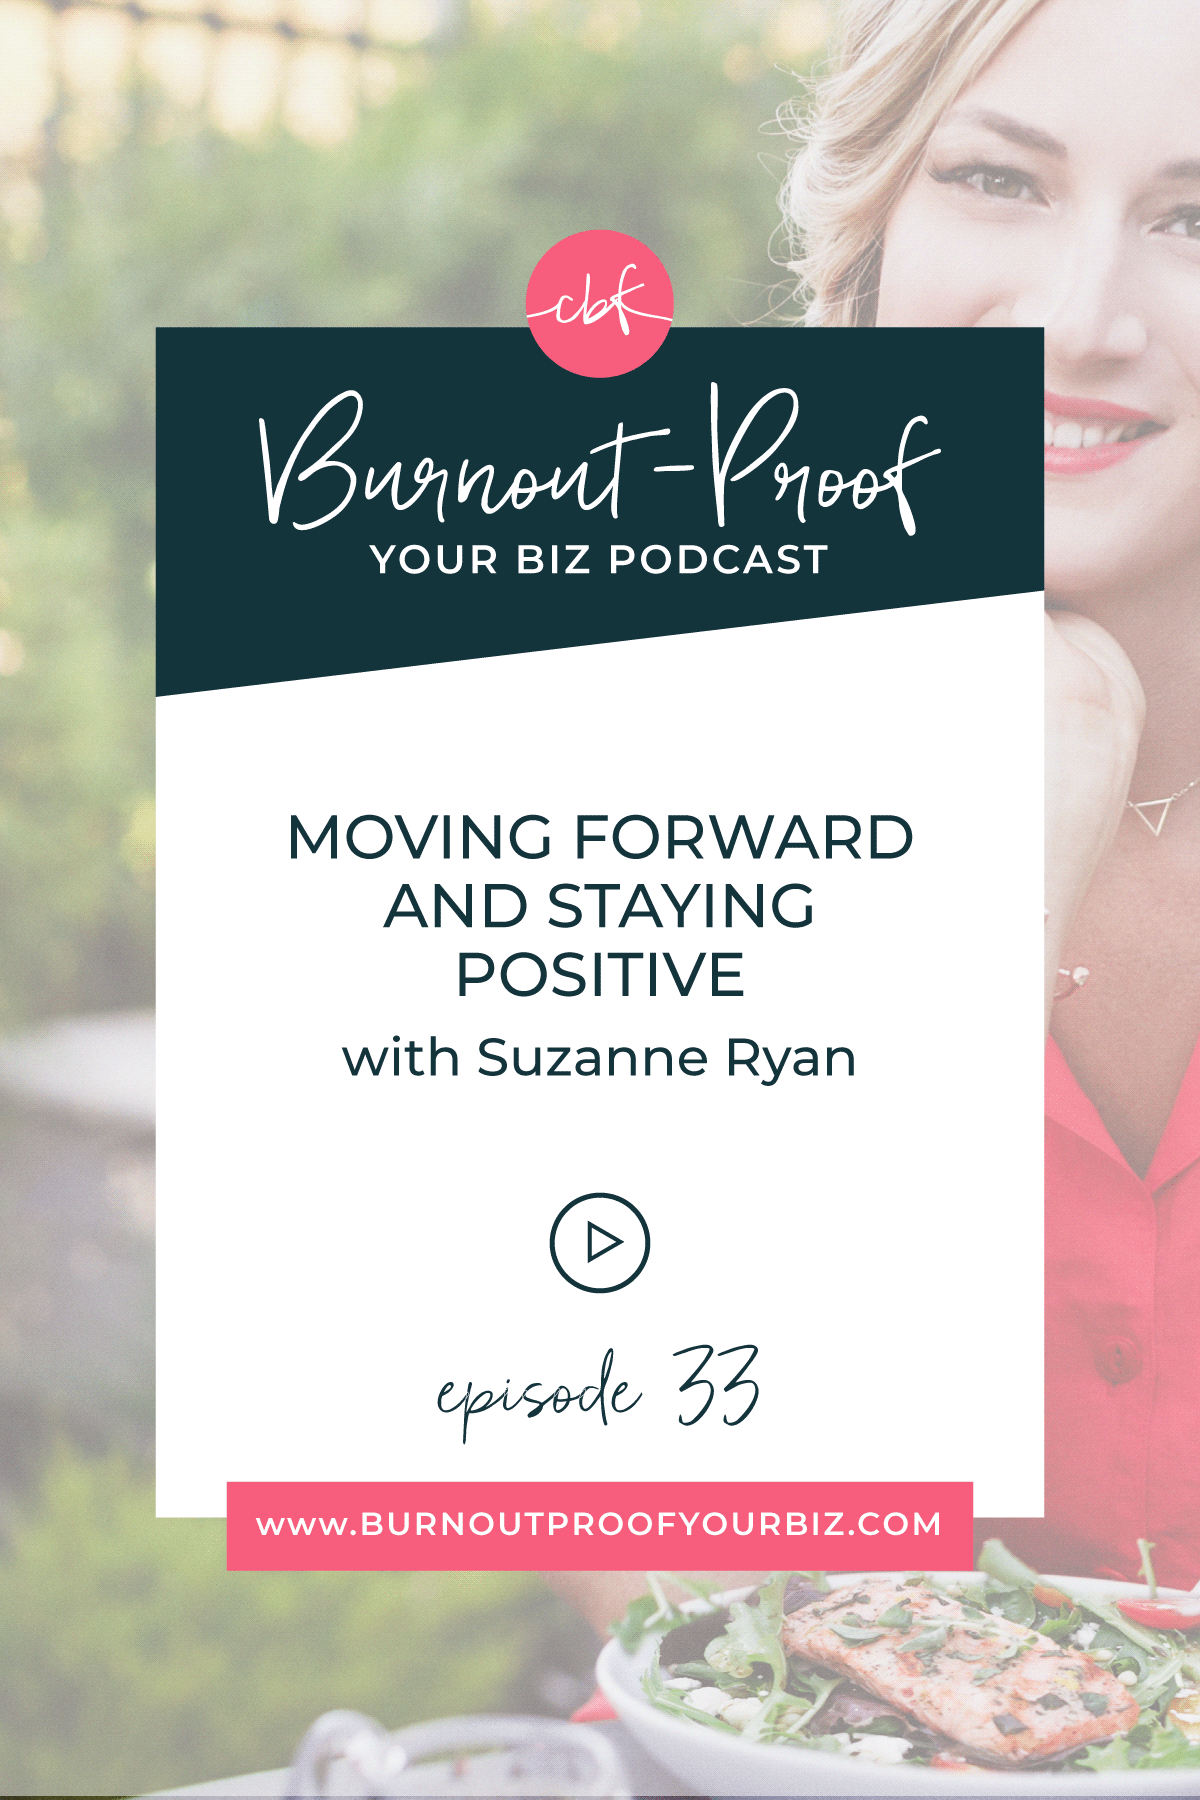 Burnout-Proof Your Biz Podcast with Chelsea B Foster | Episode 033 - Moving Forward and Staying Positive with Suzanne Ryan | Learn how to run your biz and live your dream life on your own terms without the fear of burnout.